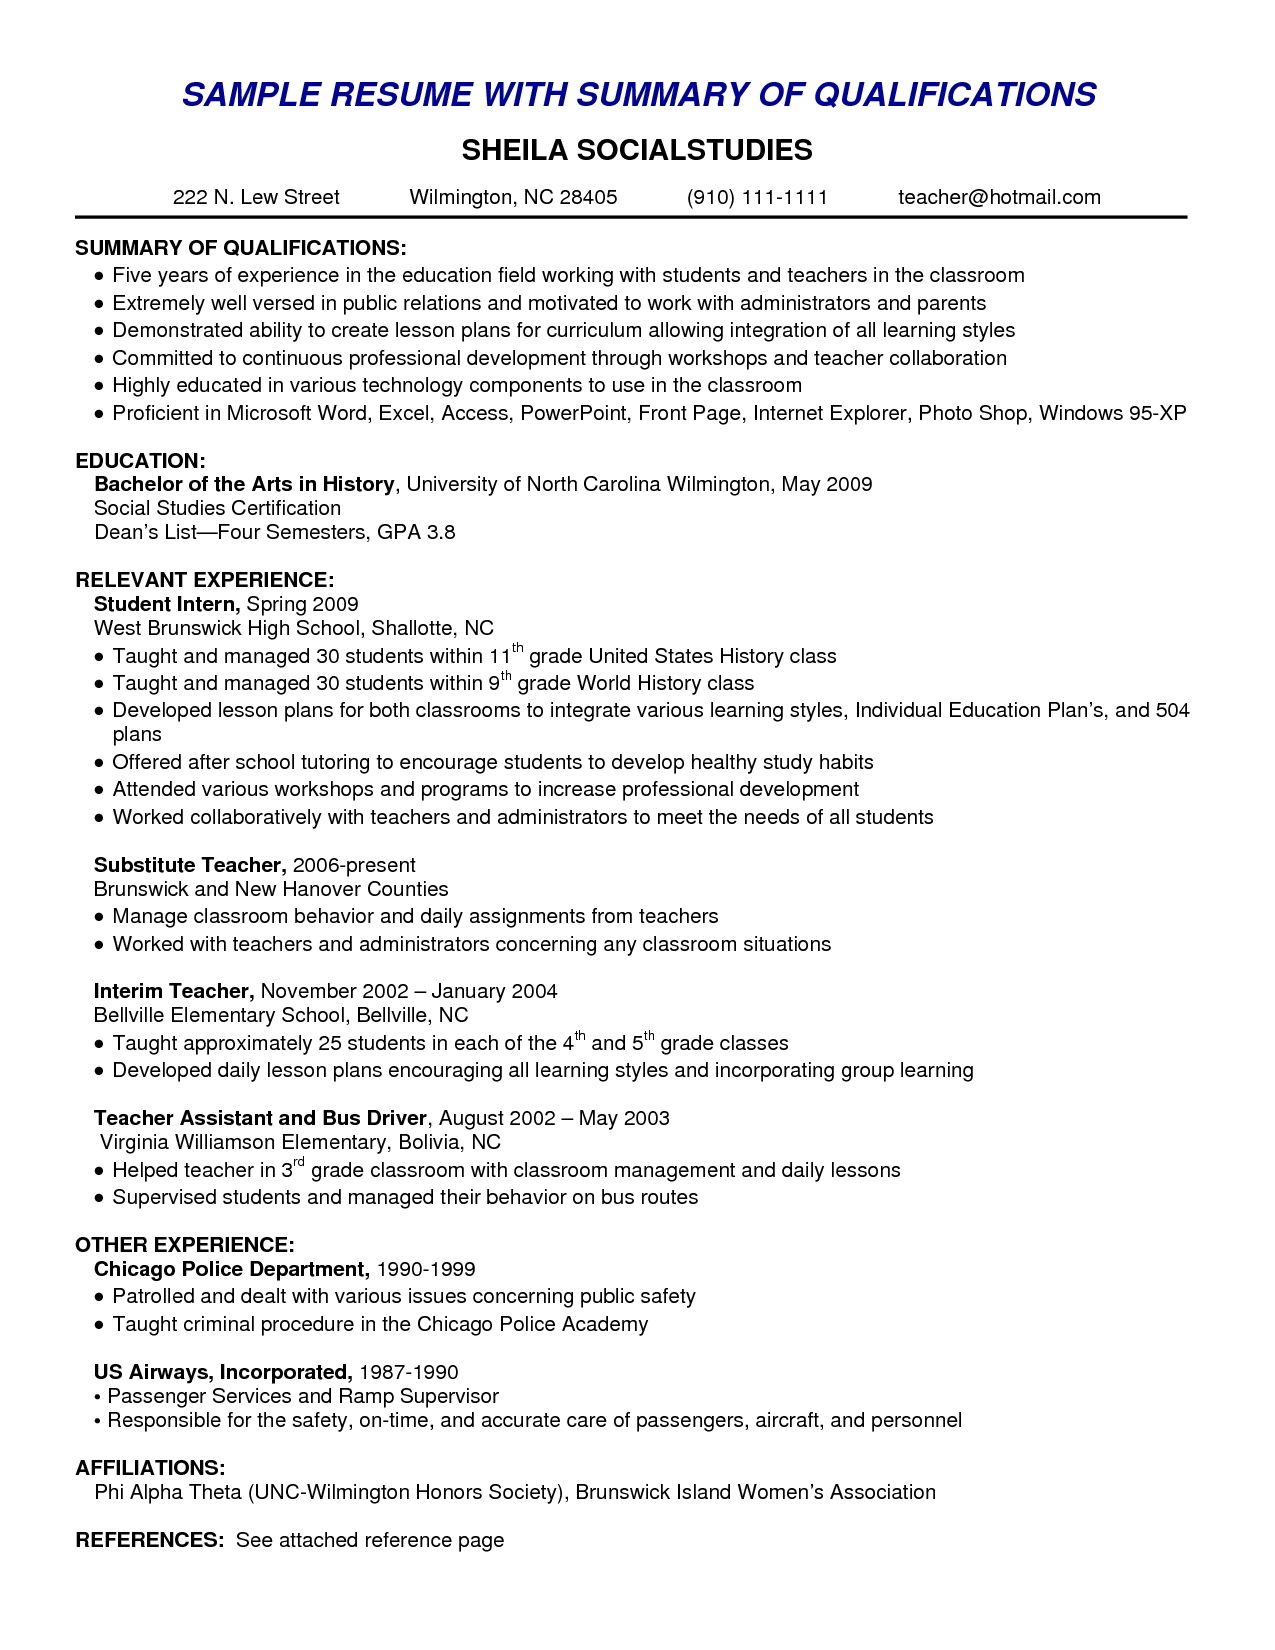 resume qualification summary on sample examples for nightclub manager template pdf Resume Resume Template With Summary Of Qualifications